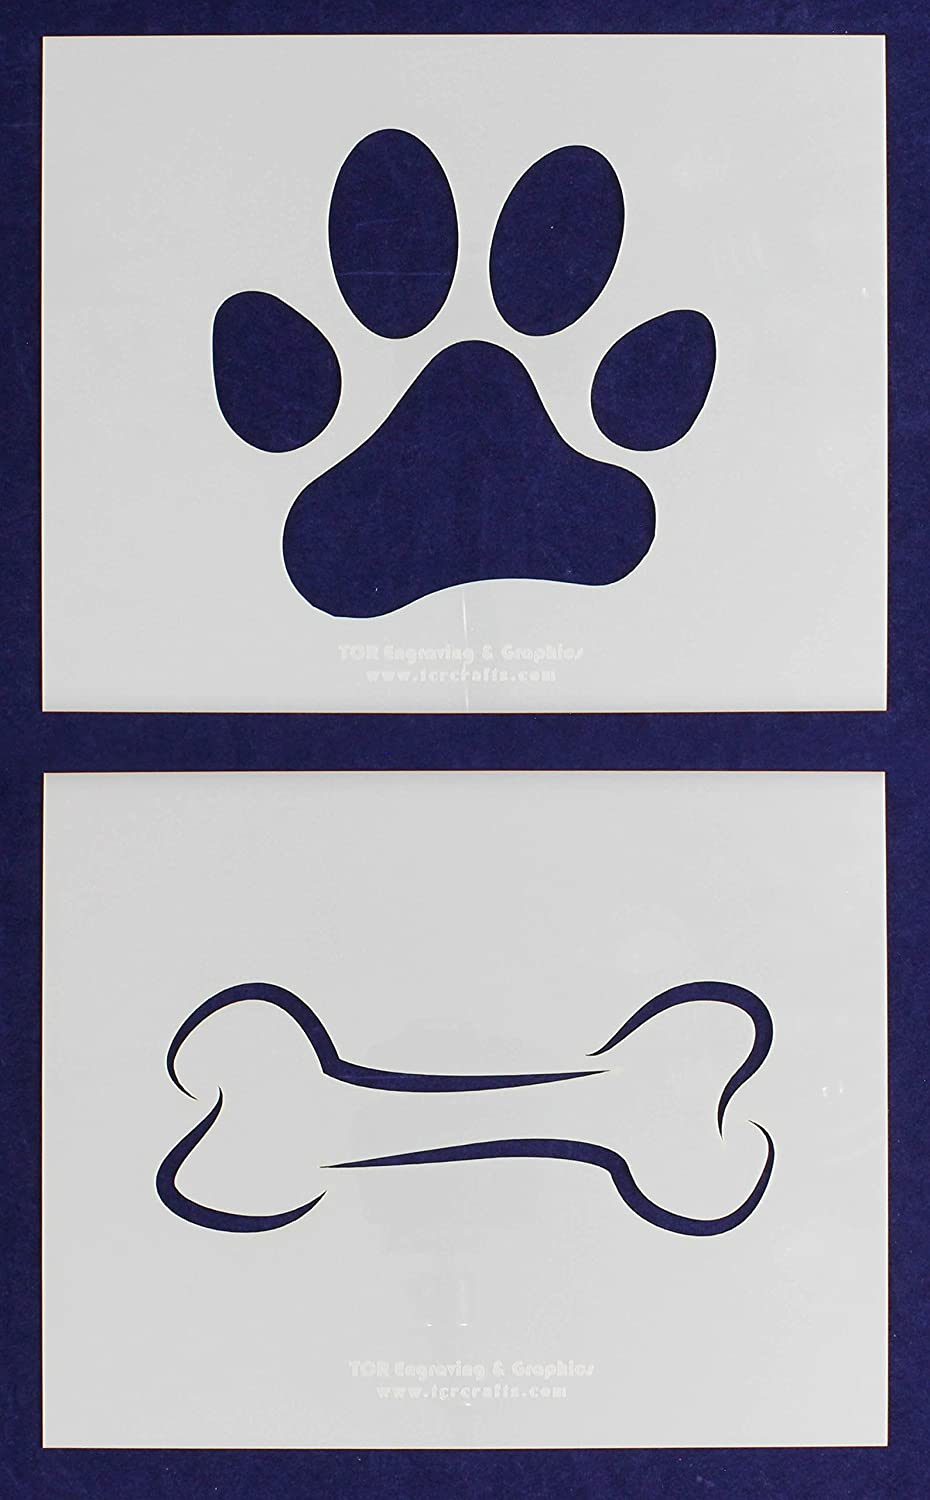 photo regarding Dog Paw Print Stencil Printable Free referred to as Pet Bone and Paw Print Stencils - 2 Piece Established - 8 x 10 Inches